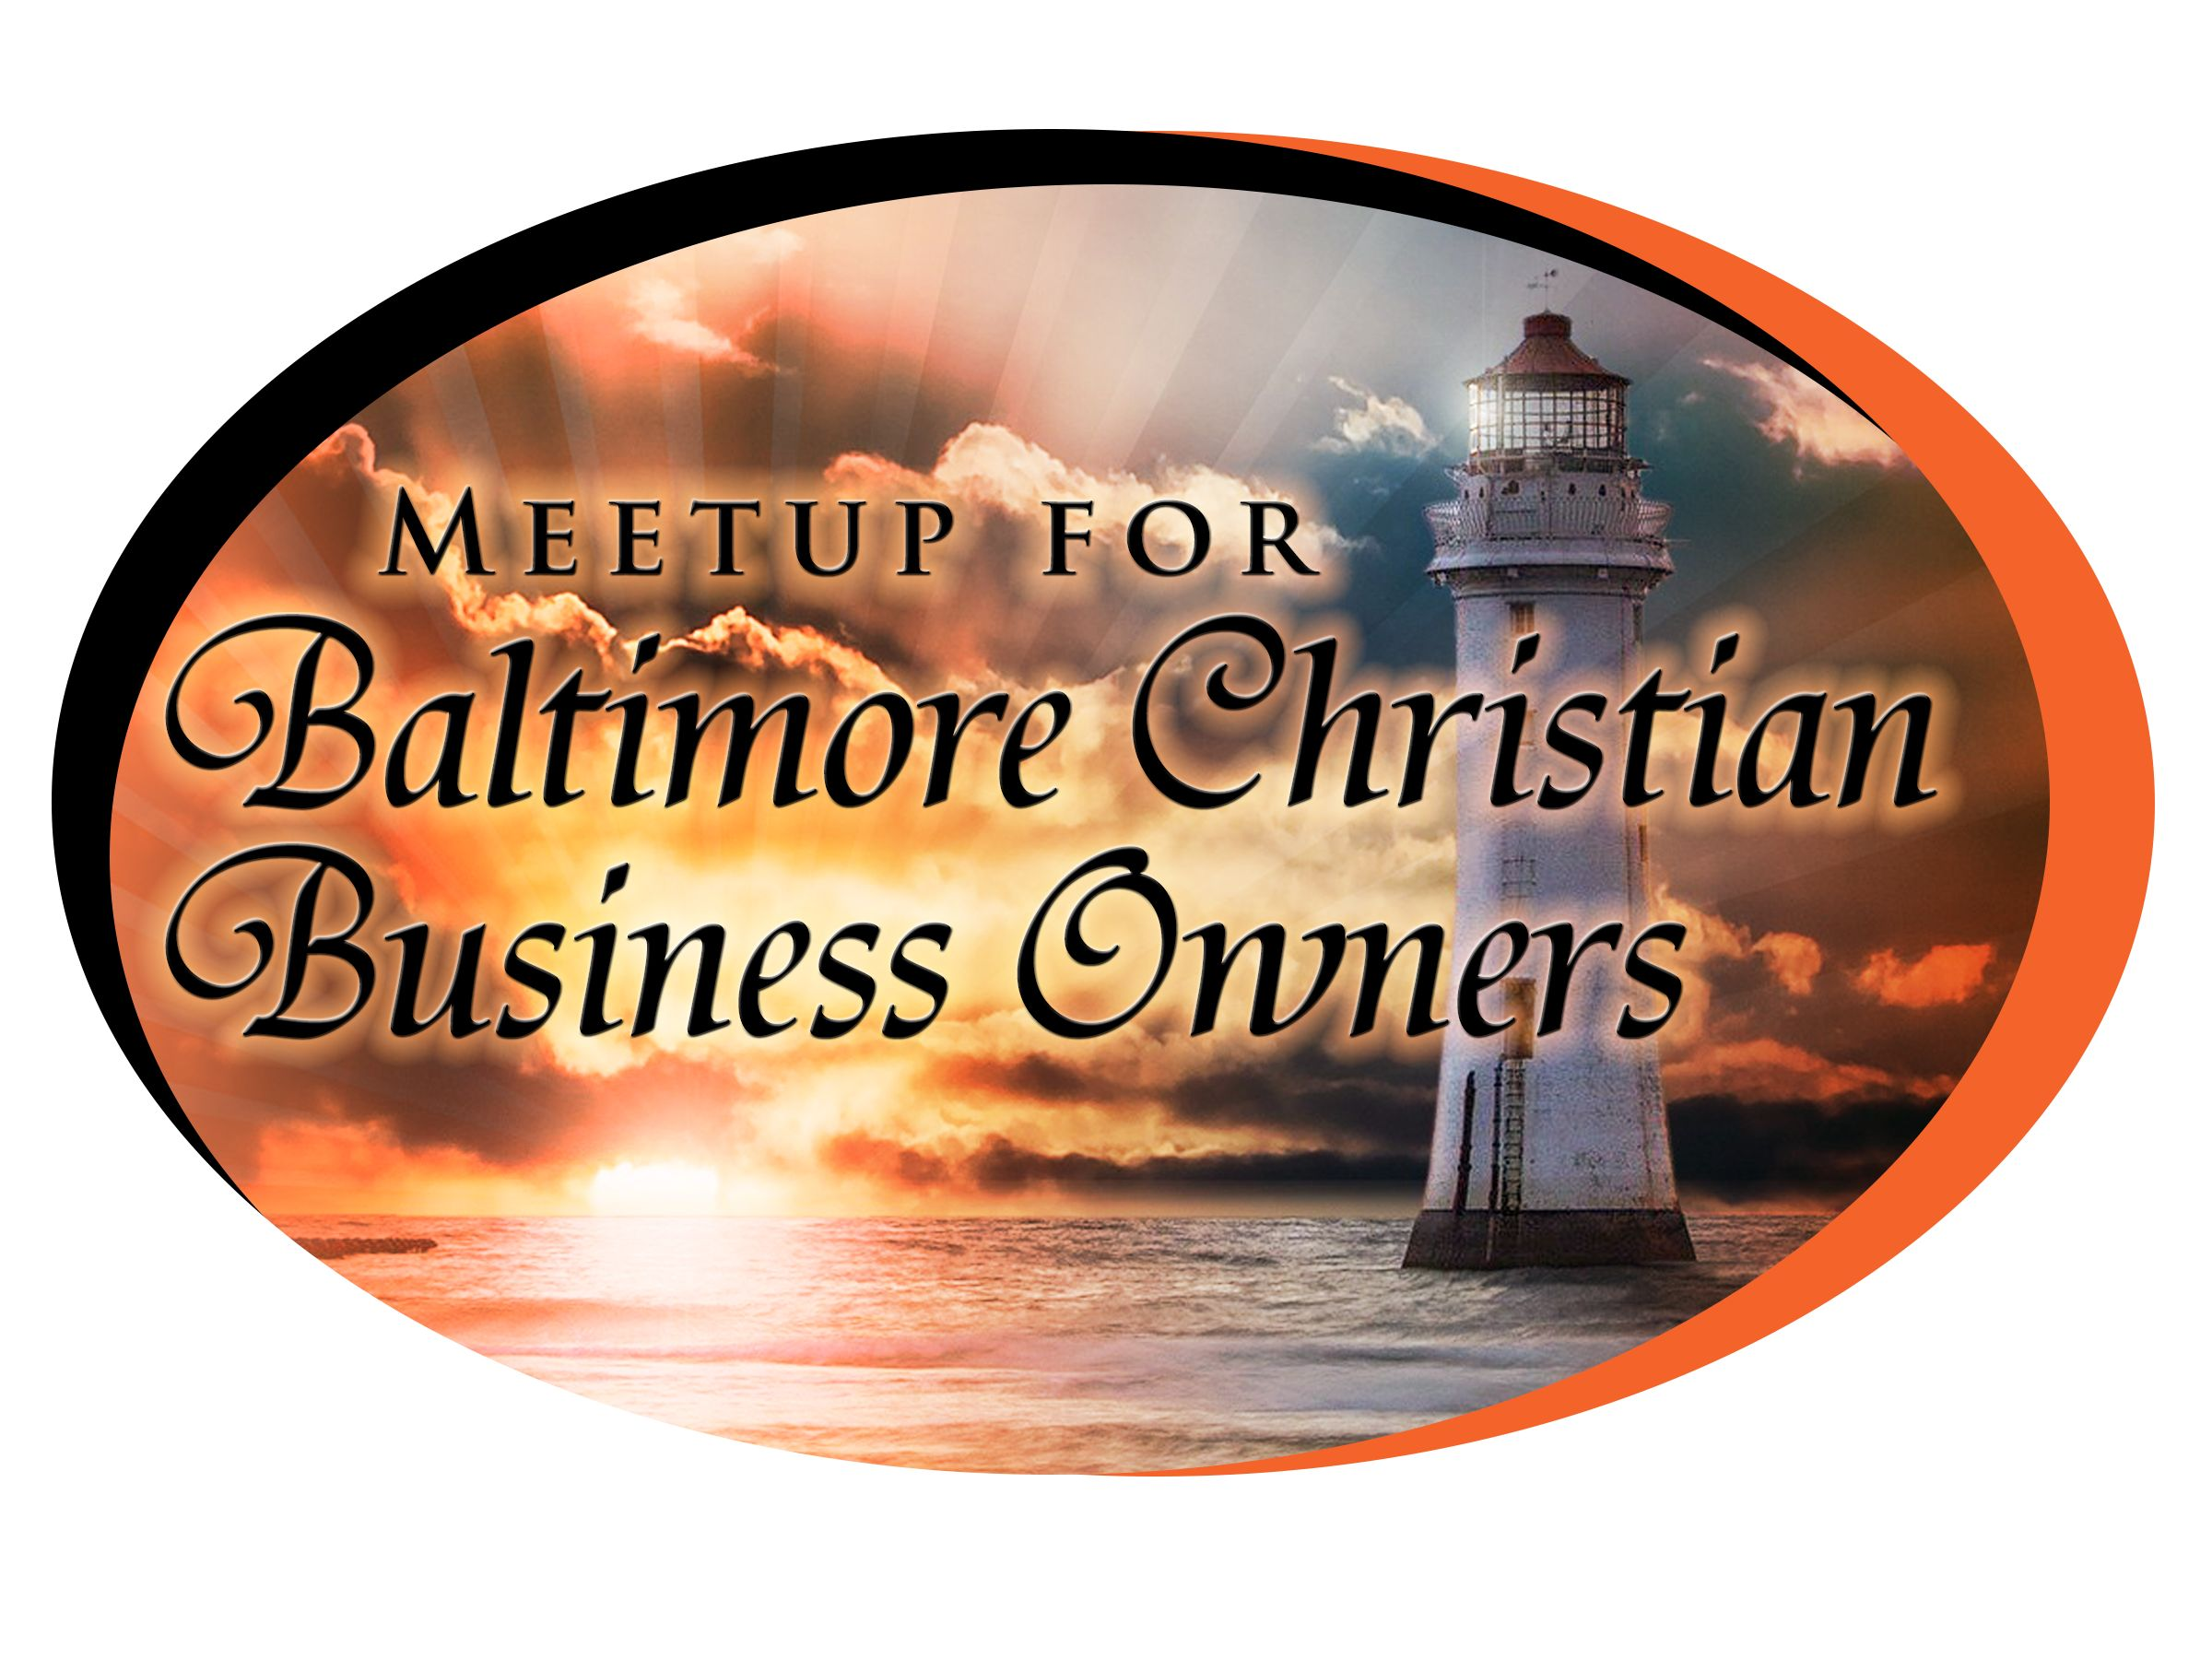 Baltimore Christian Business Owners